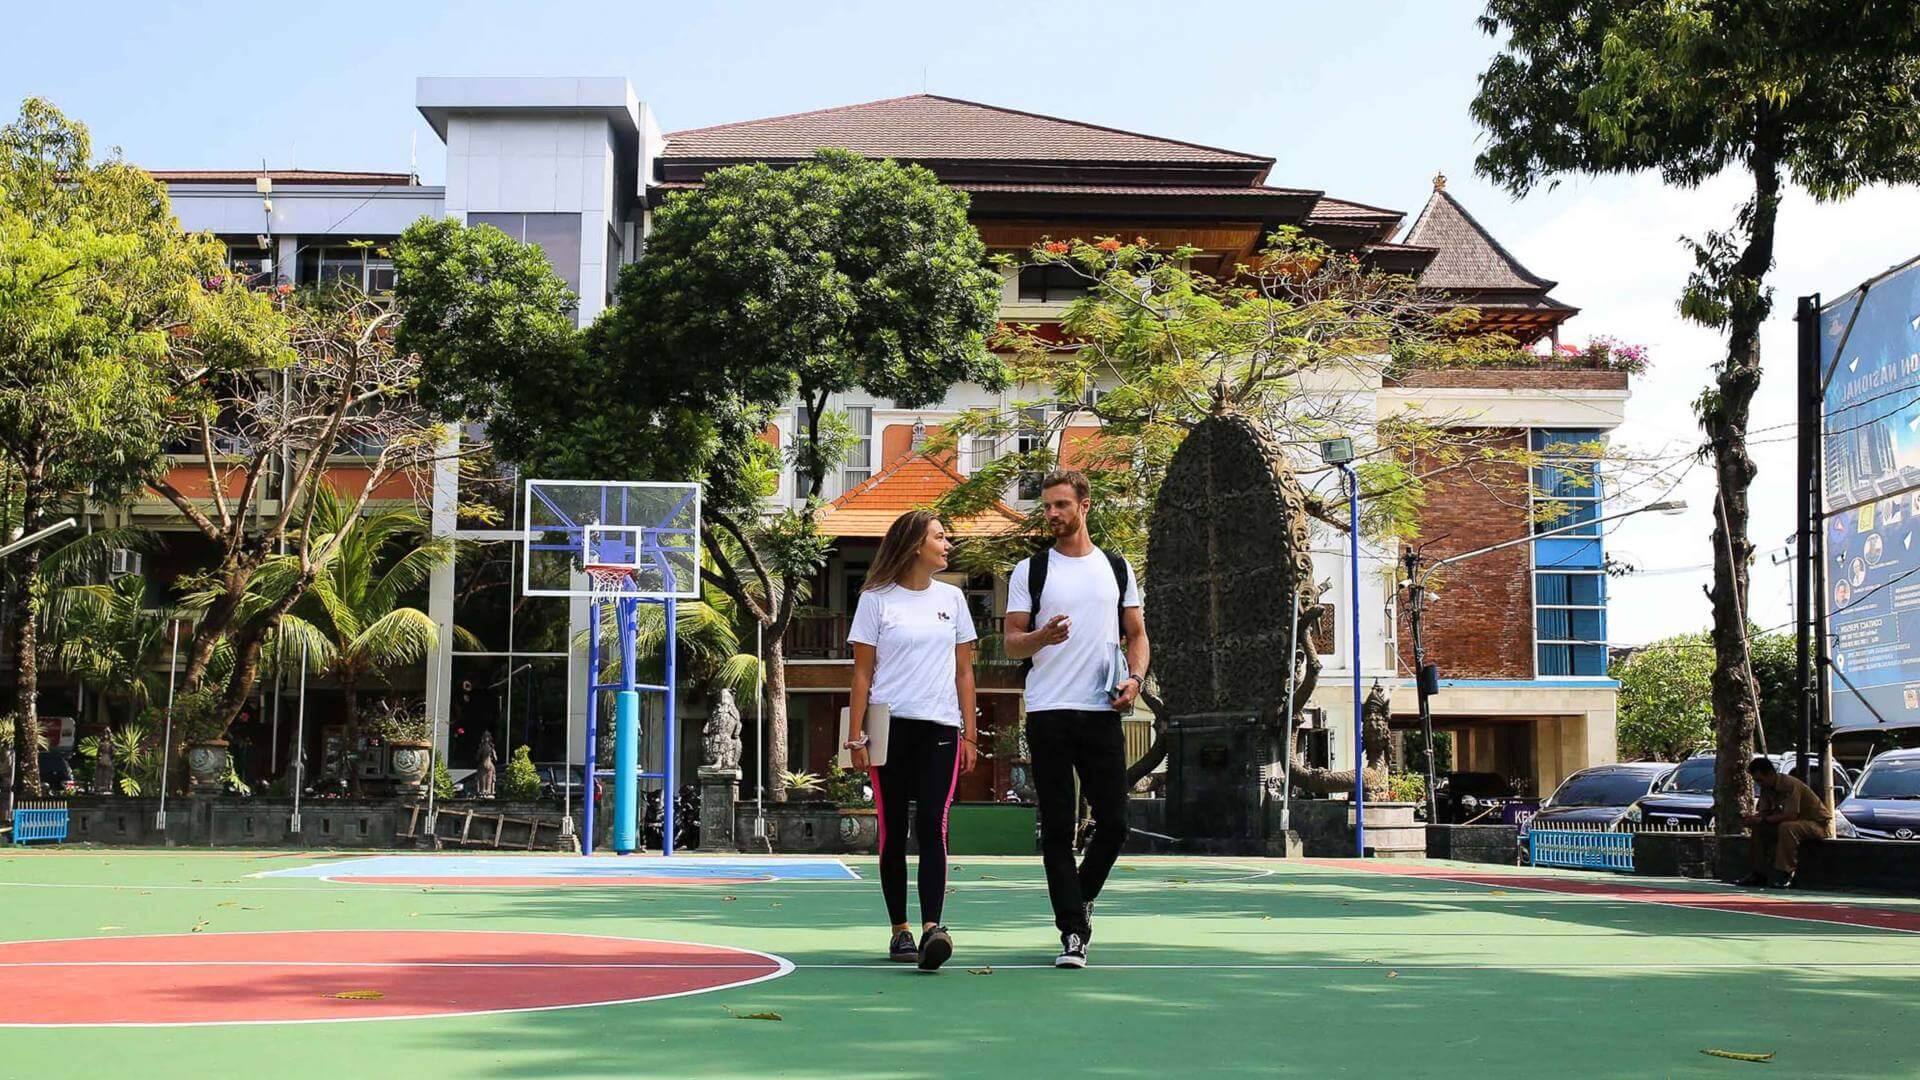 Two people walking on a basketball field with a big building in the background